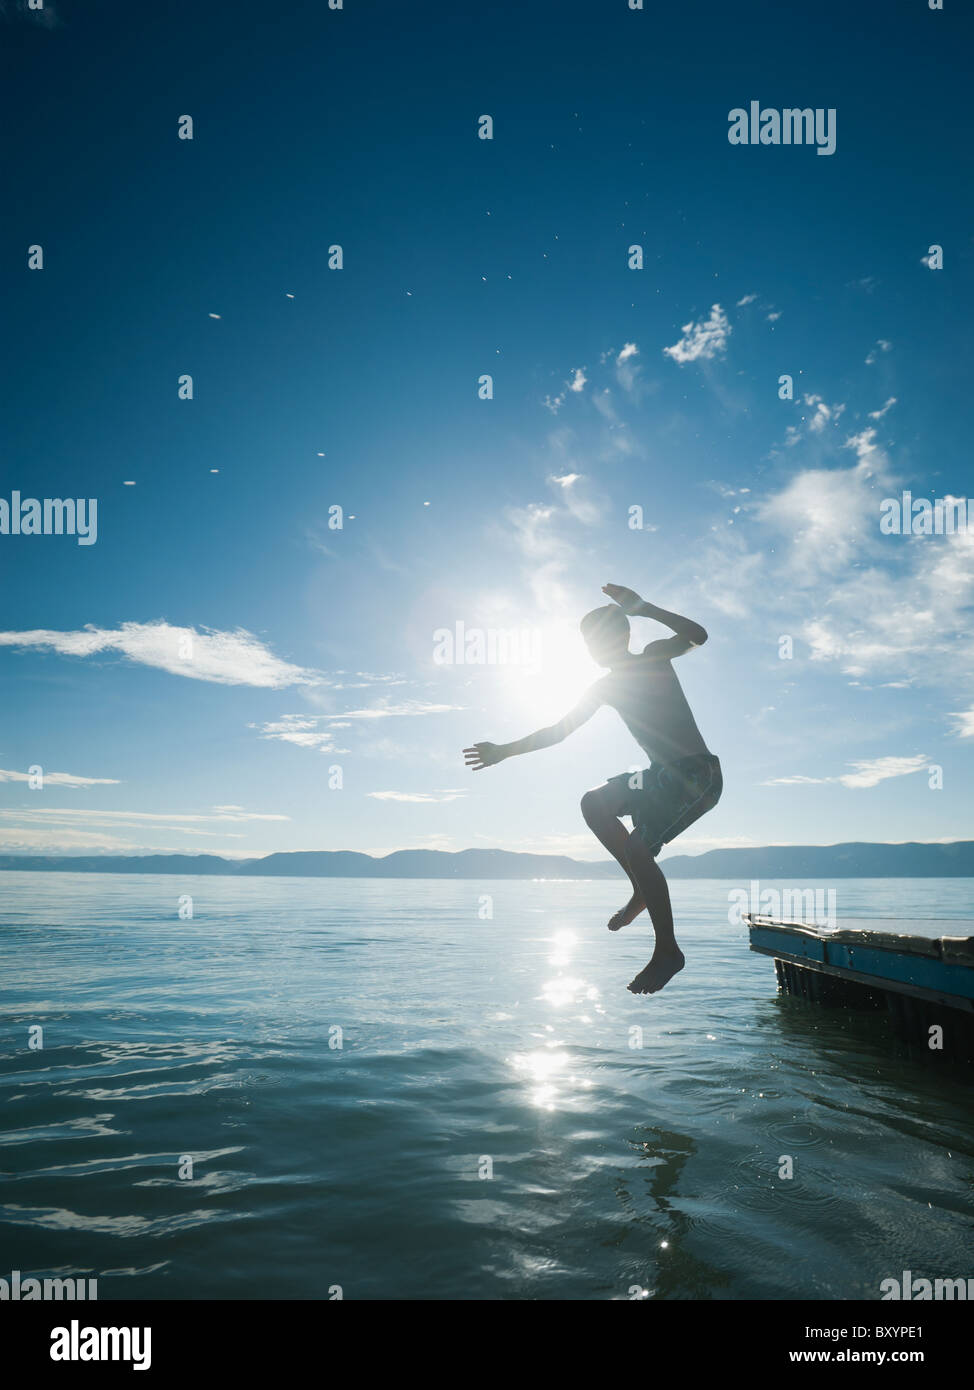 Boy jumping from raft - Stock Image